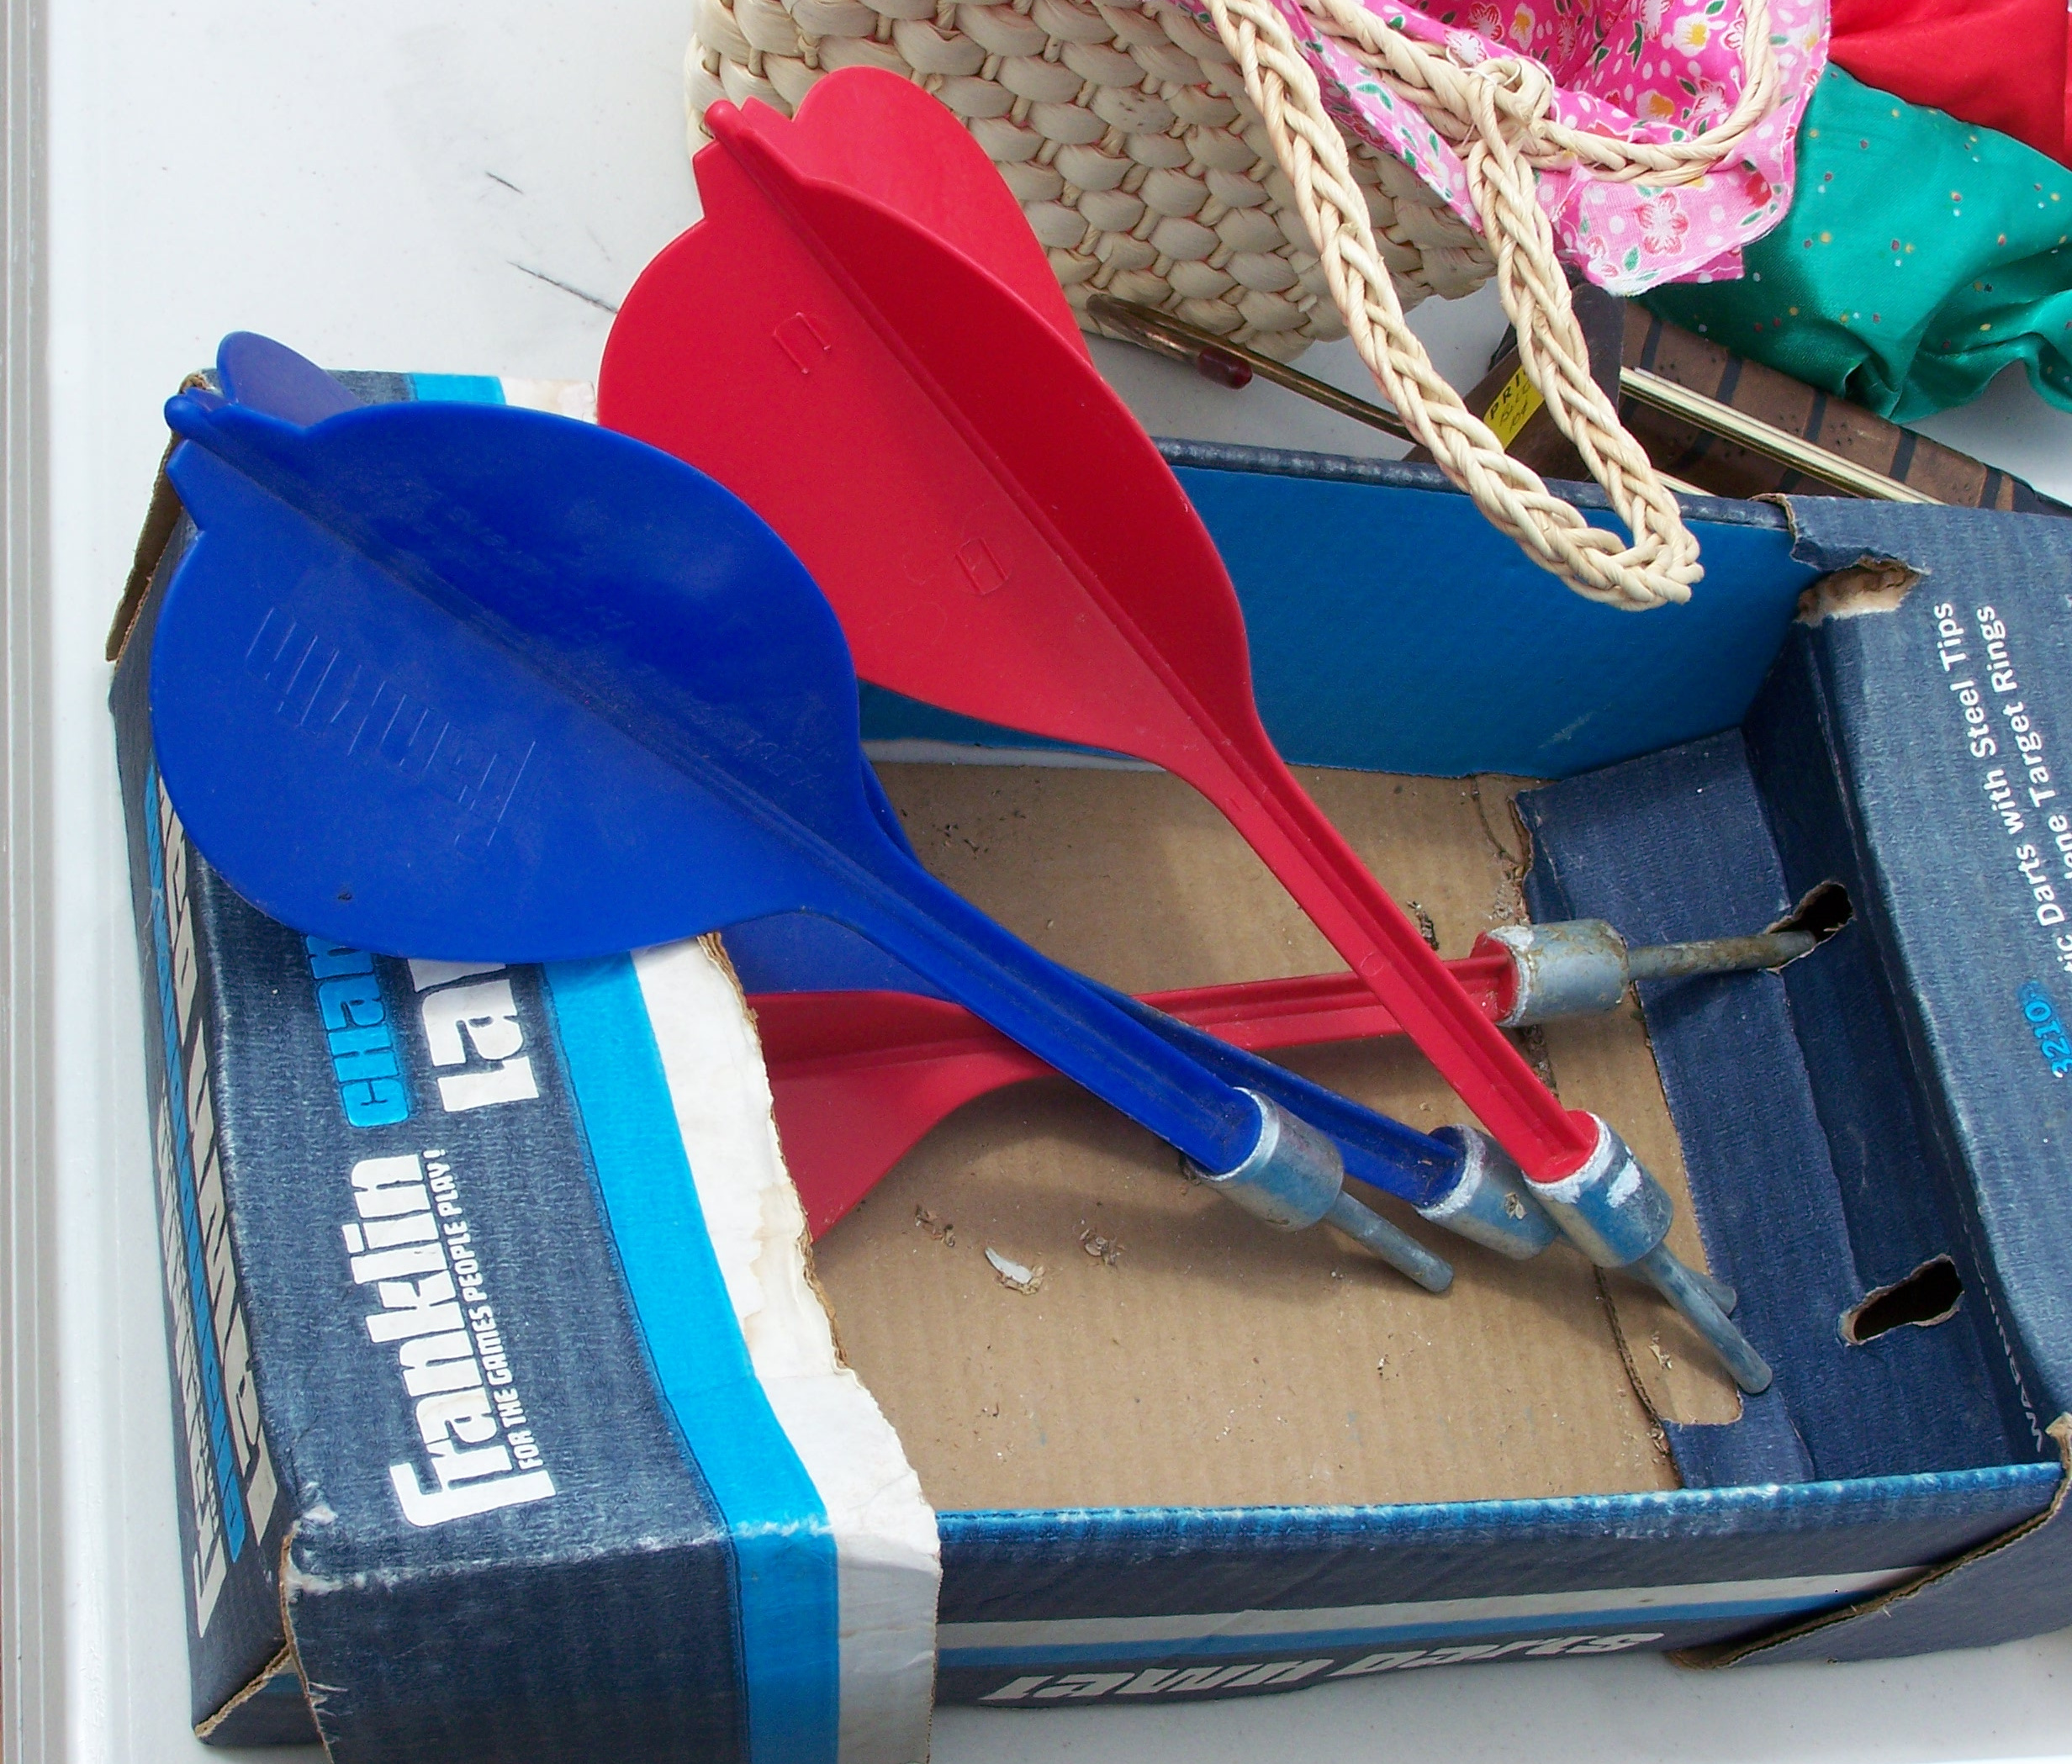 Lawndarts These Toys Were Banned For Being Seriously Dangerous